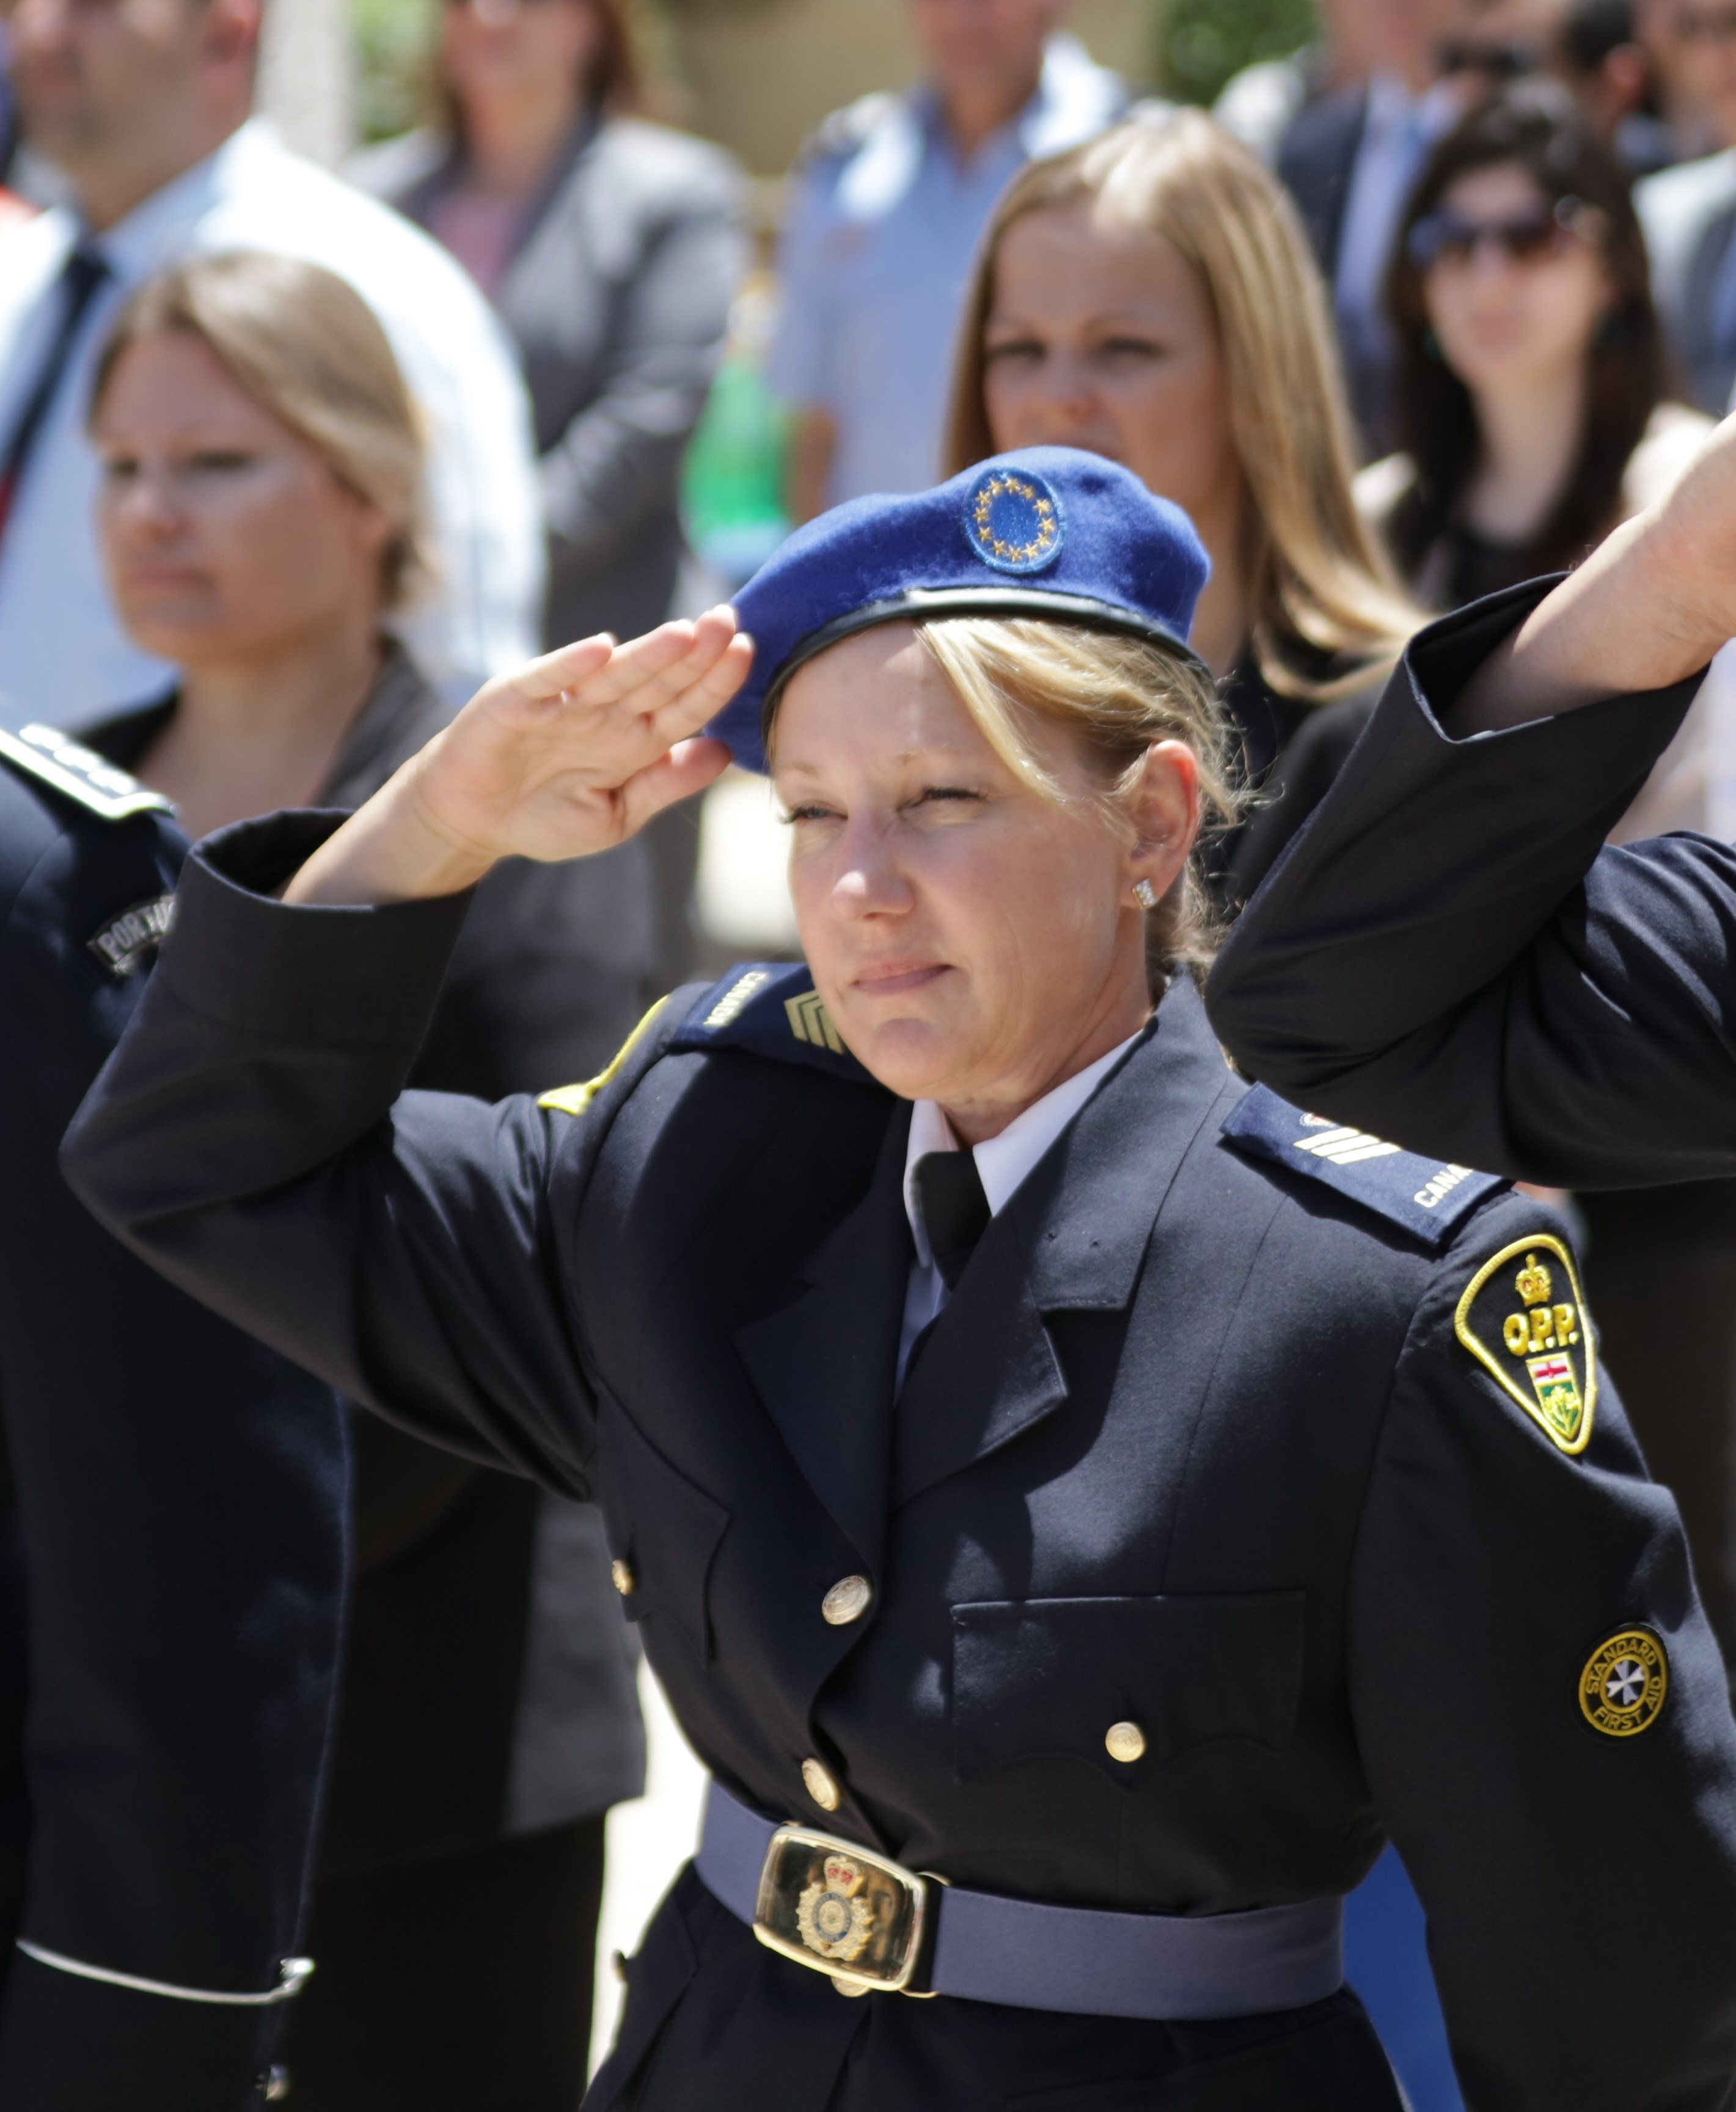 OPP Det -Sgt  Caren Ashmore leaves Canadian footprint in